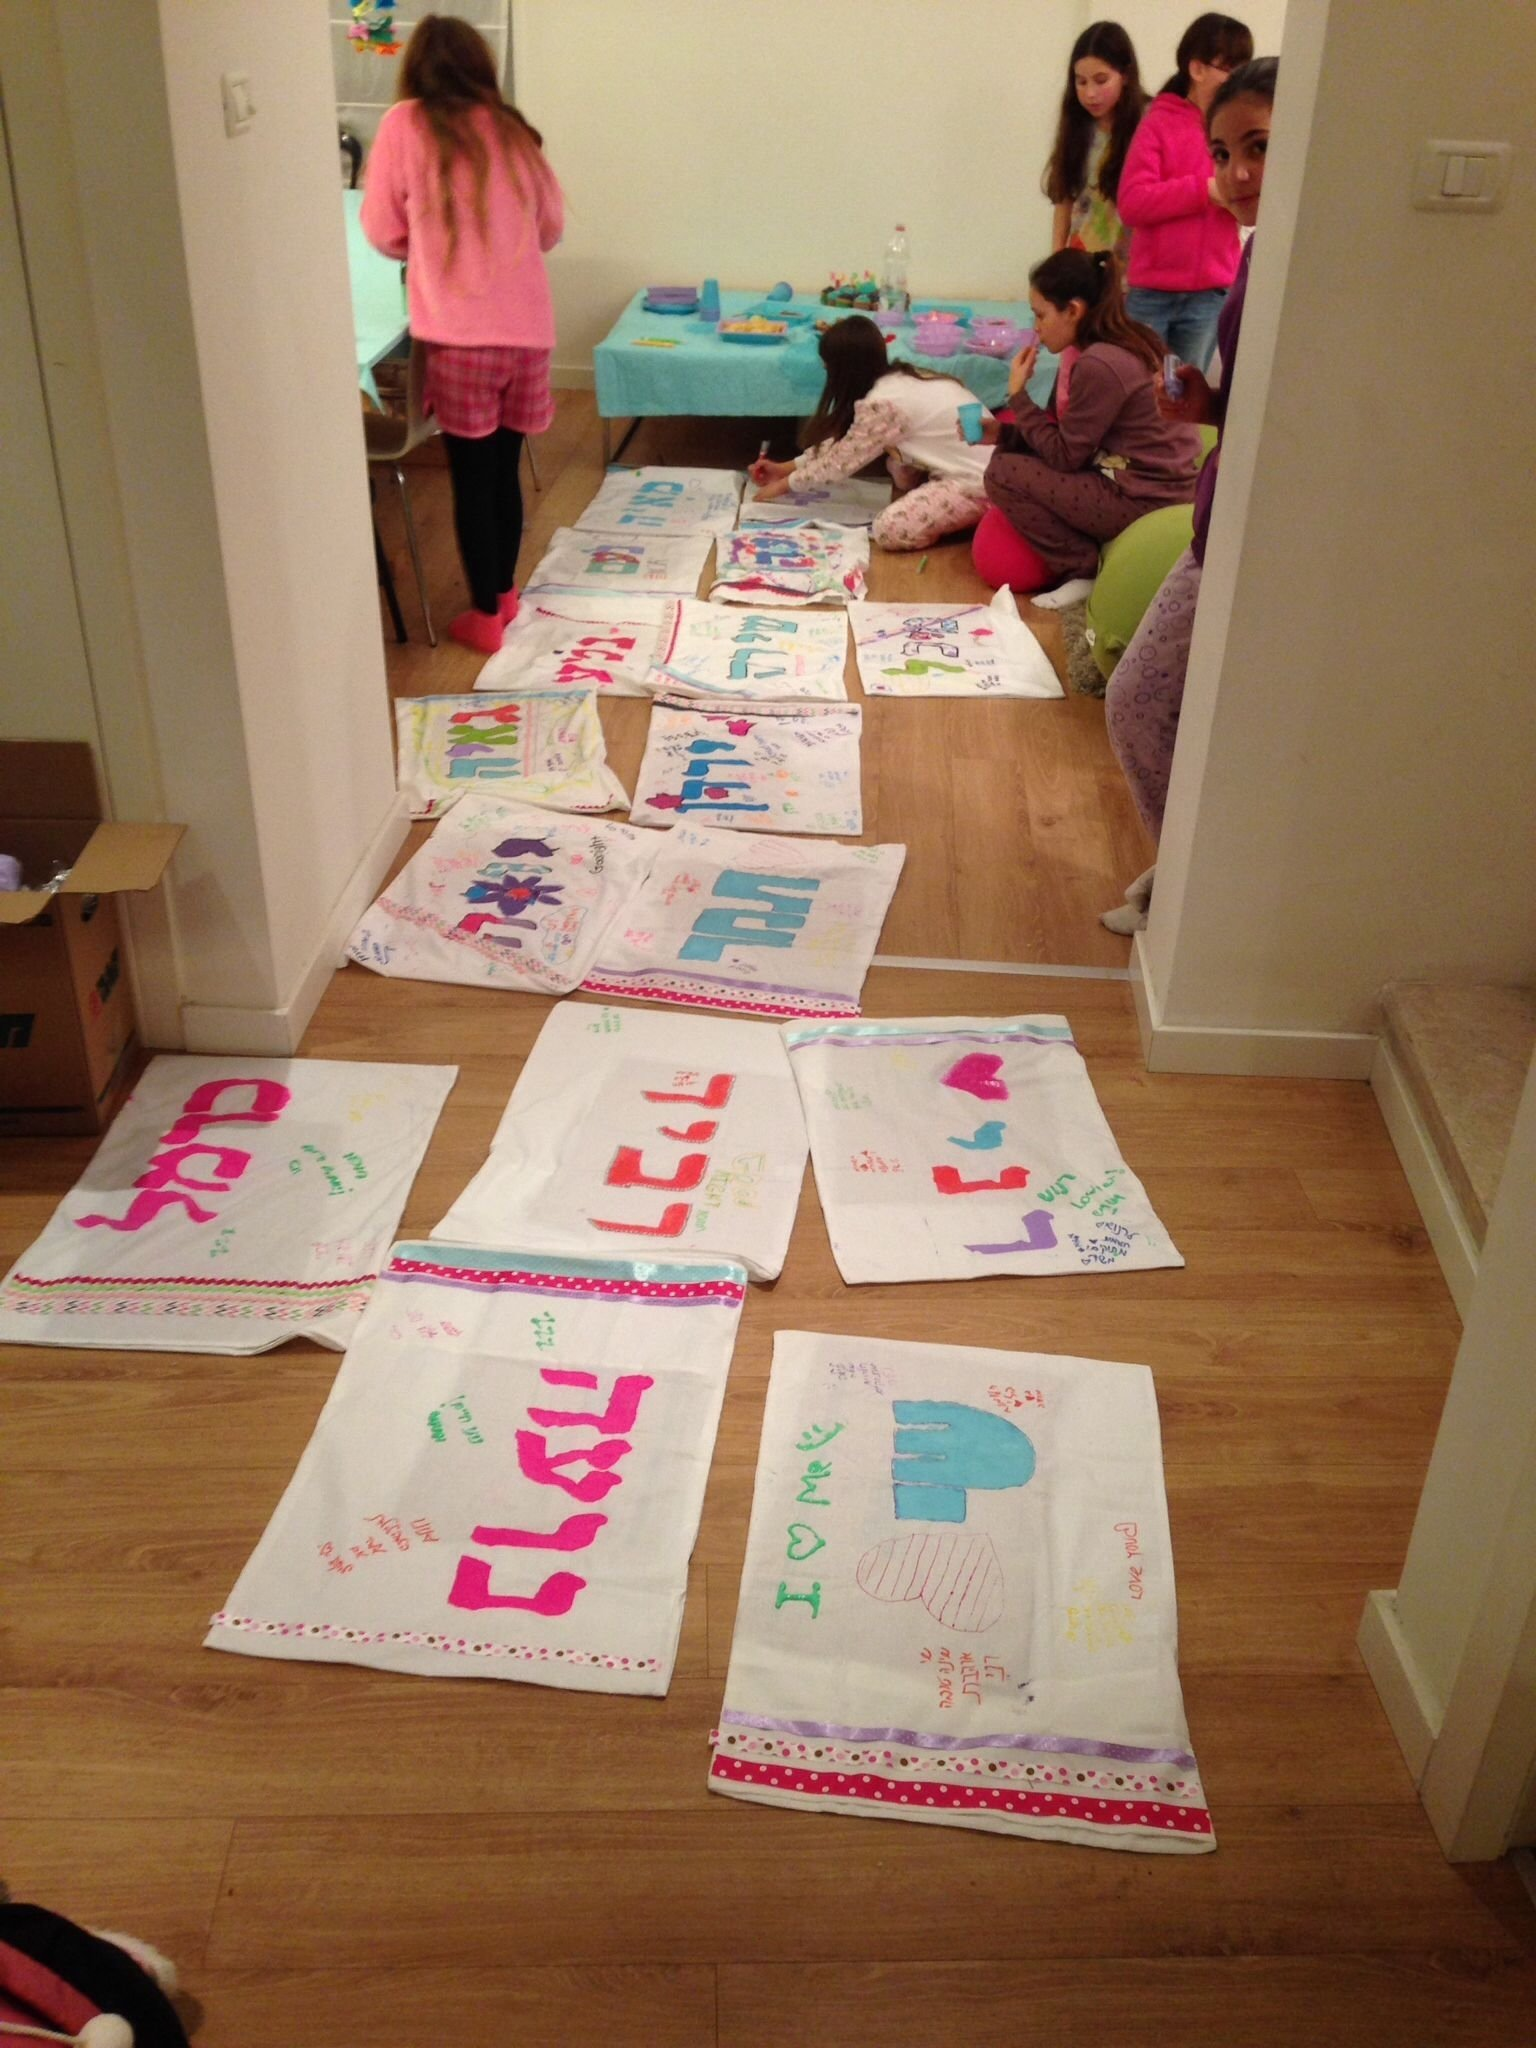 10 Awesome Slumber Party Ideas For 11 Year Olds pillowcase crafts at 11 year olds pyjama party kids parties 2 2020